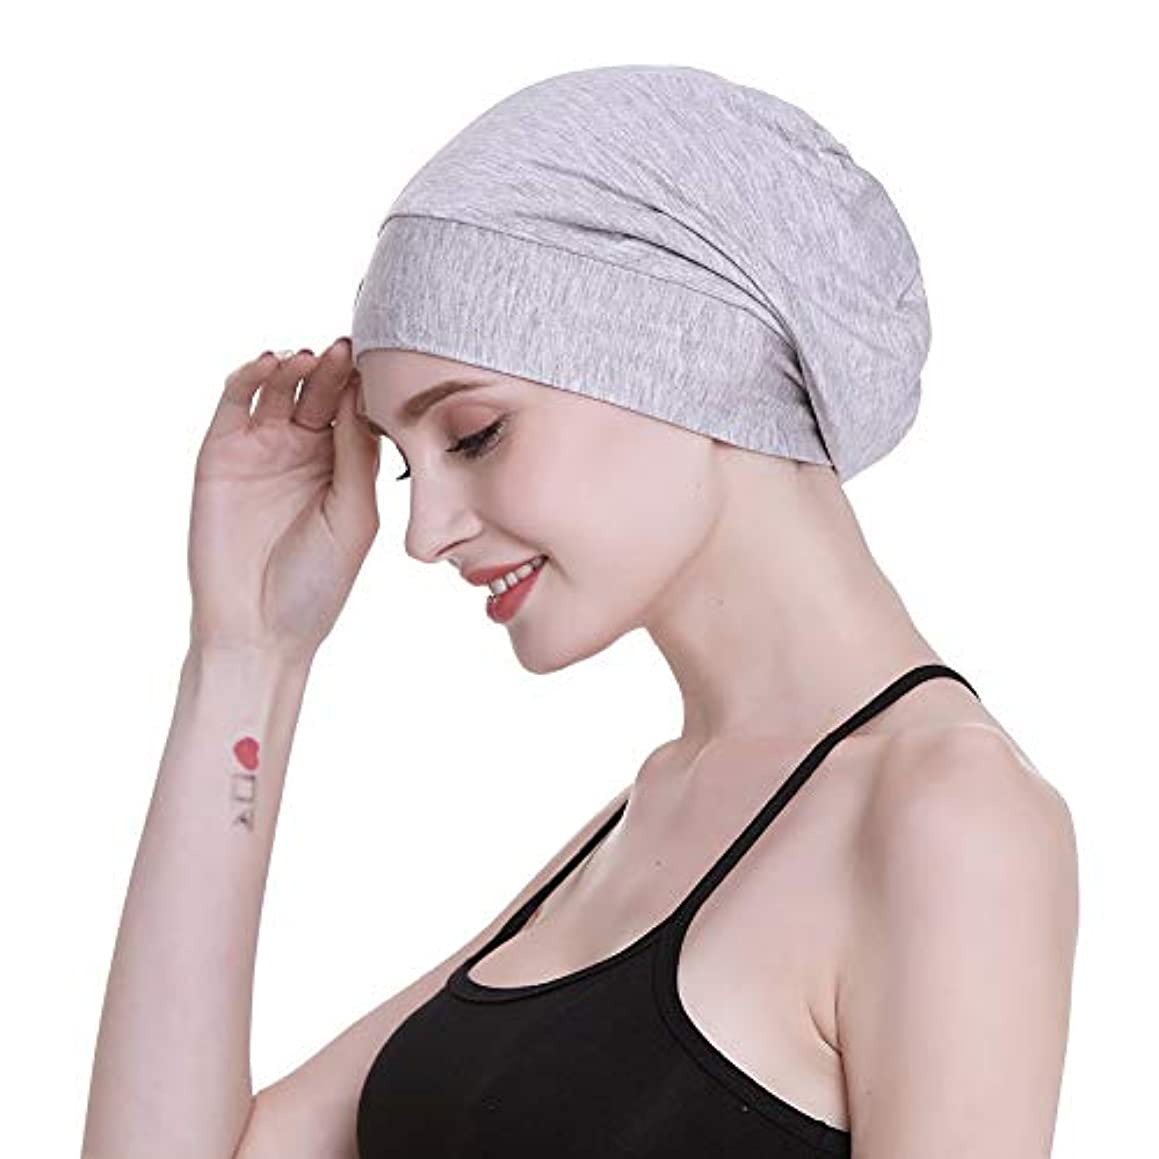 FocusCare Satin Lined Sleep Slouchy Cap Curly Girl Slap Headwear Gifts for Frizzy Hair Women